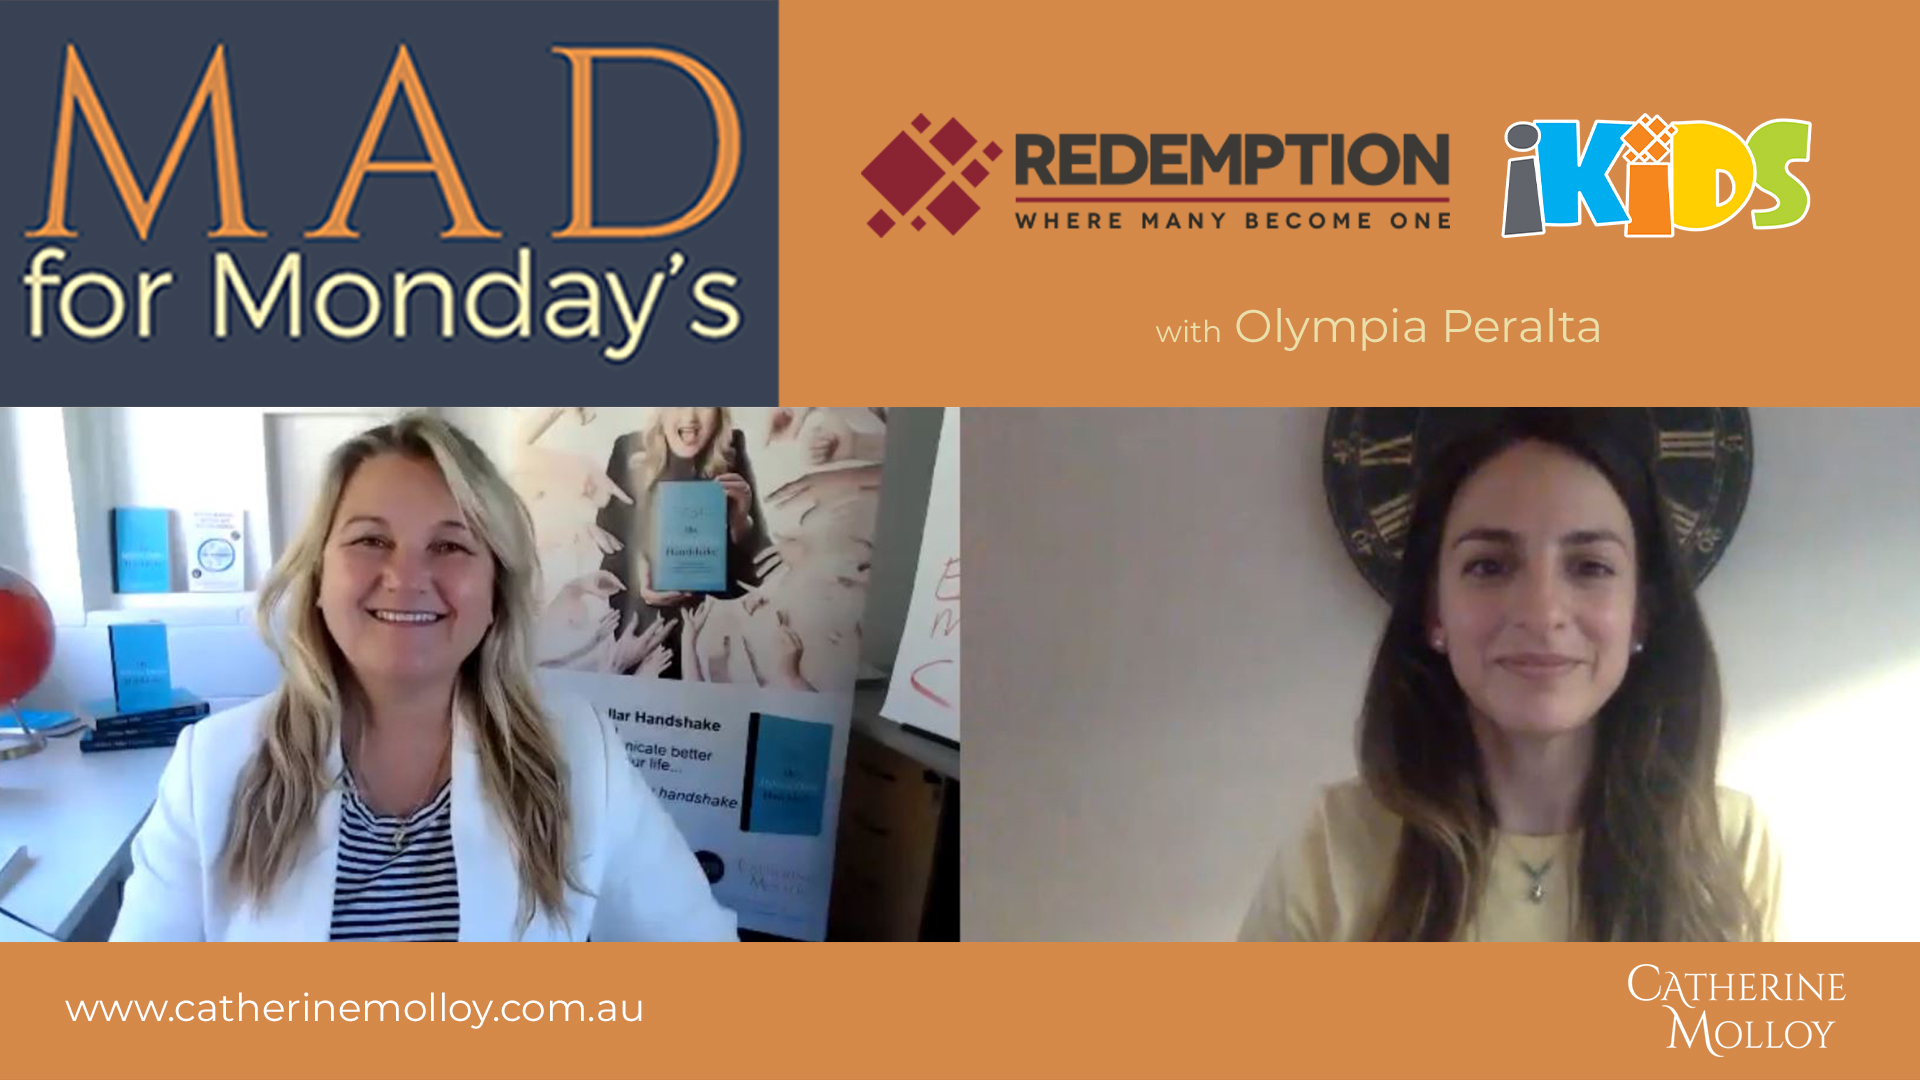 MAD for Monday's – Redemption Kids